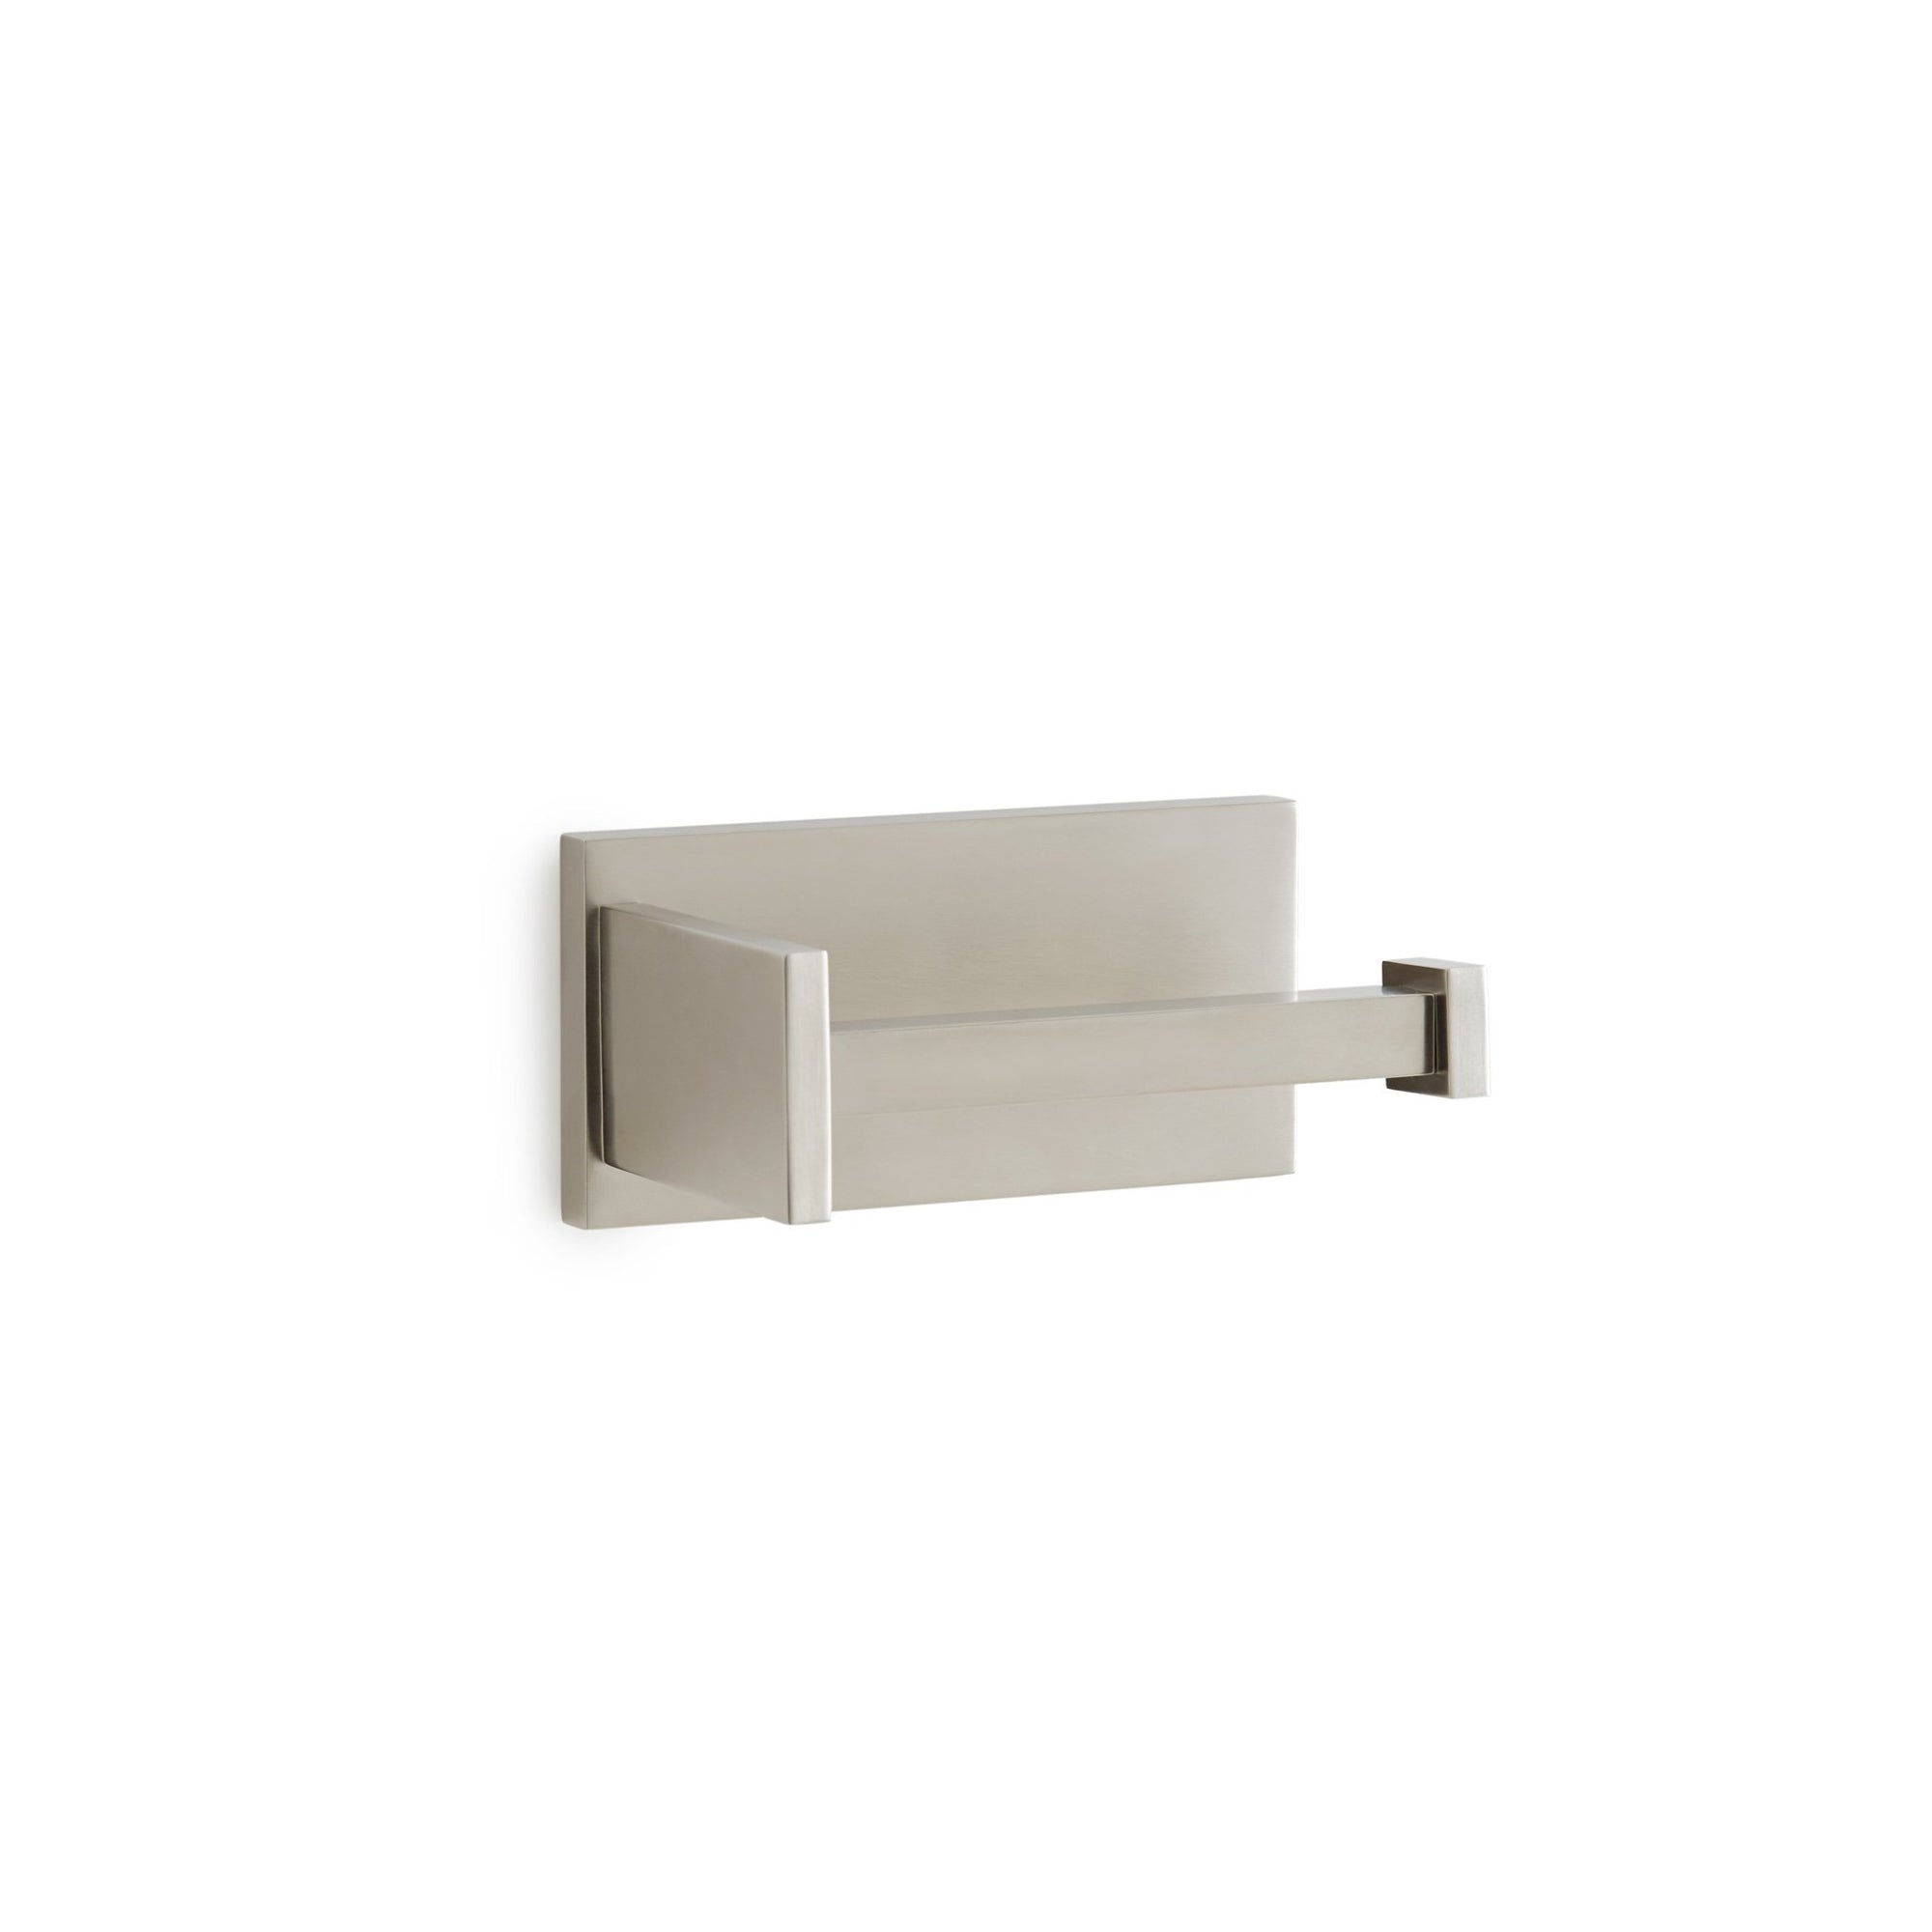 101PH-BN Sherle Wagner International Modern Paper Holder in Brushed Nickel metal finish